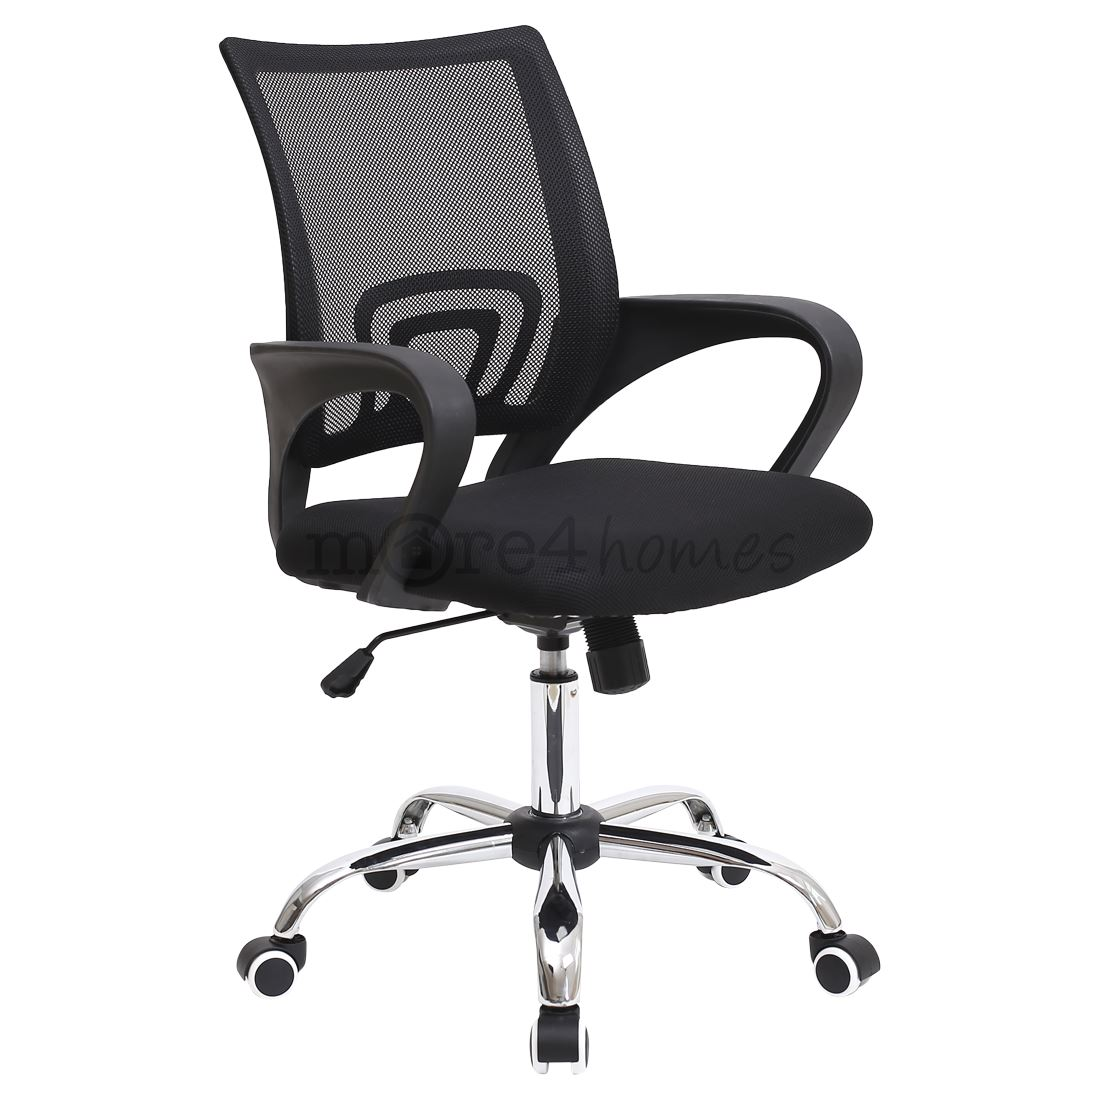 office chair armrest eddie bauer rocking metro mesh medium back with armrests computer